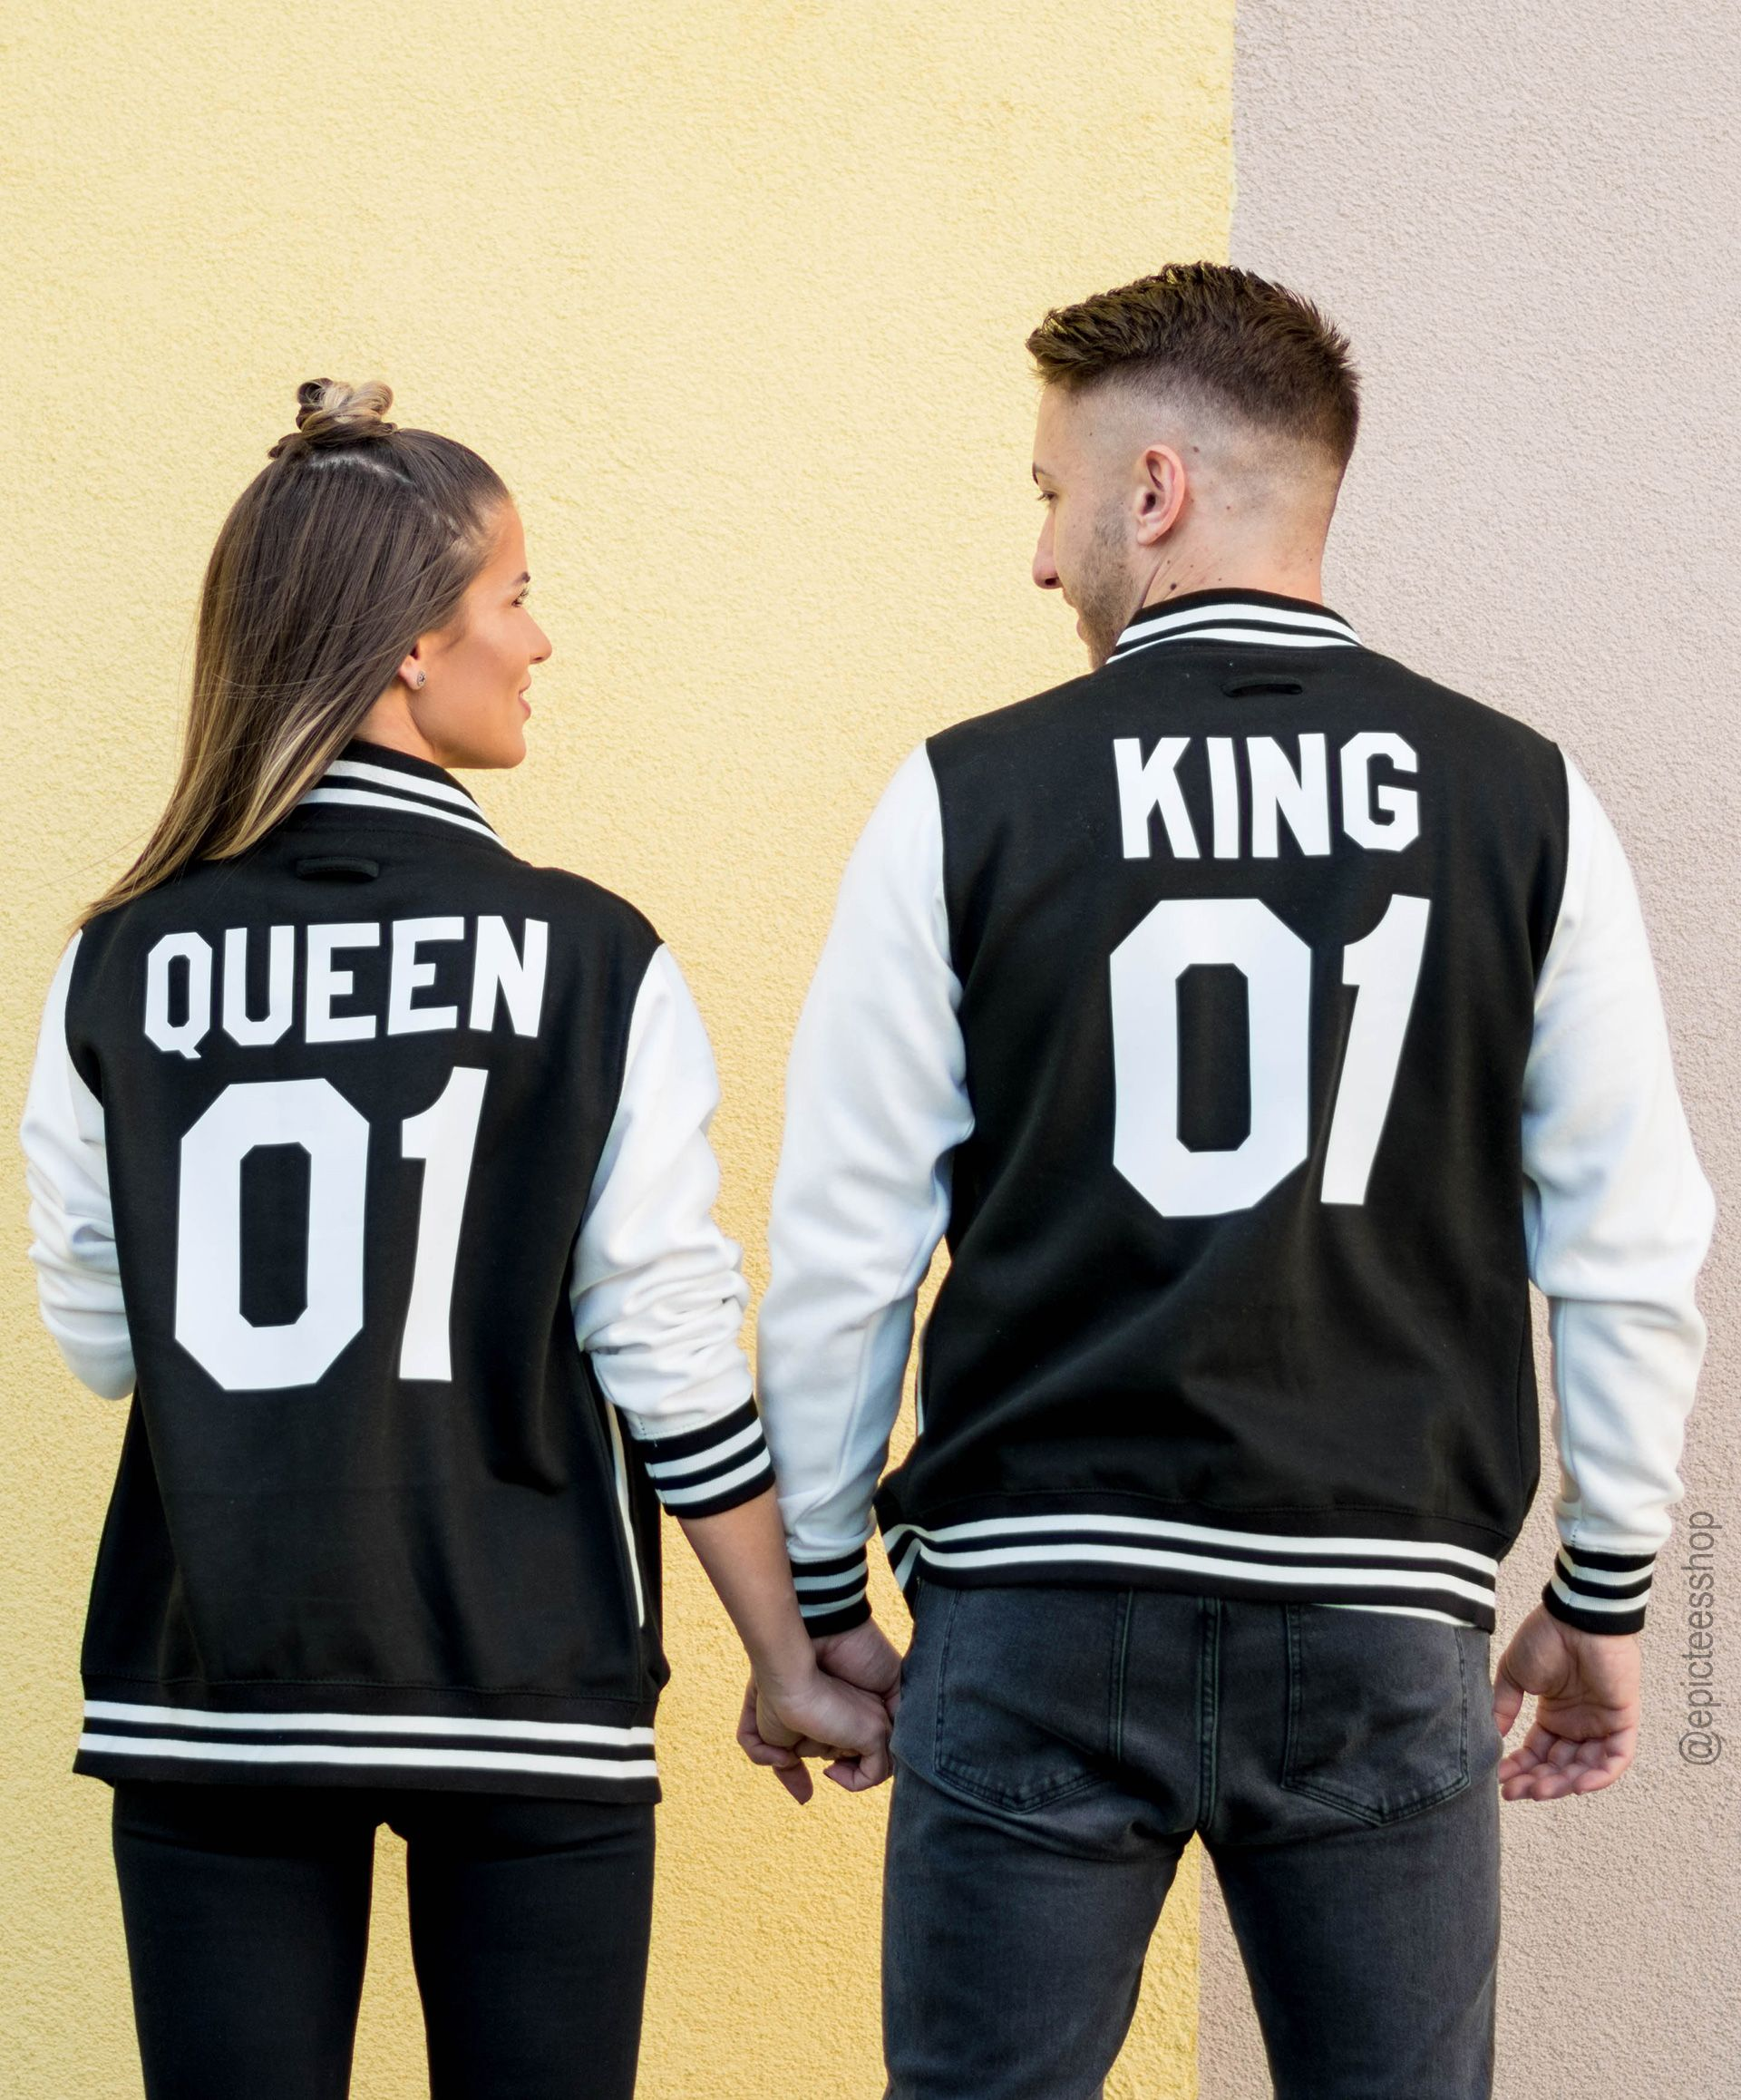 King 01 Queen 01 Varsity Jackets Matching Couples UNISEX